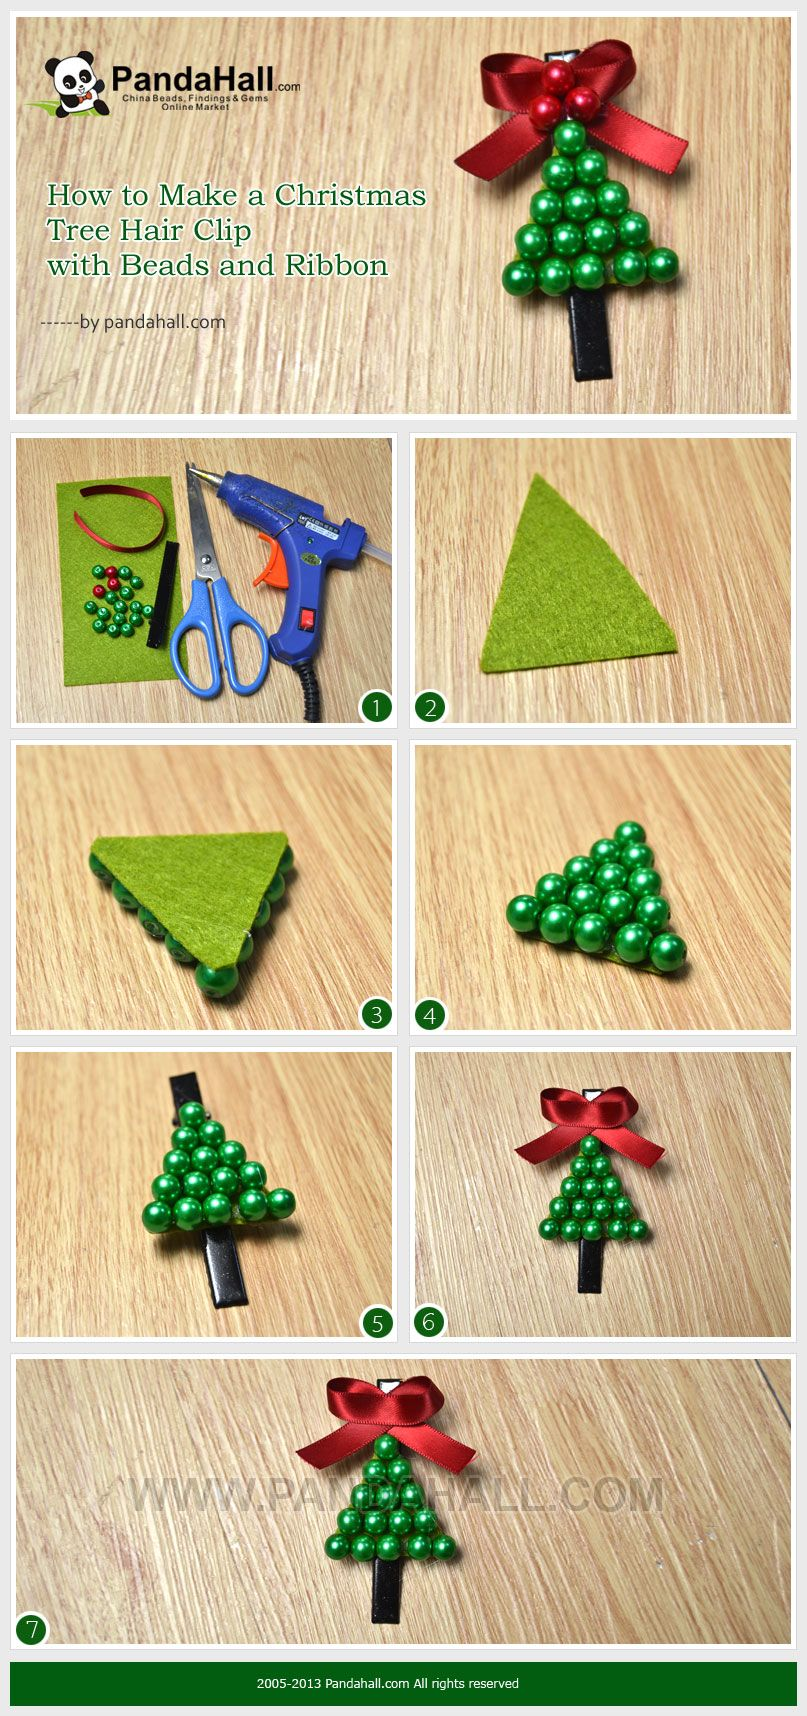 How To Make A Christmas Tree Hair Clip With Beads And Ribbon Baby Christmas Bows Christmas Hair Bows Christmas Tree Hair